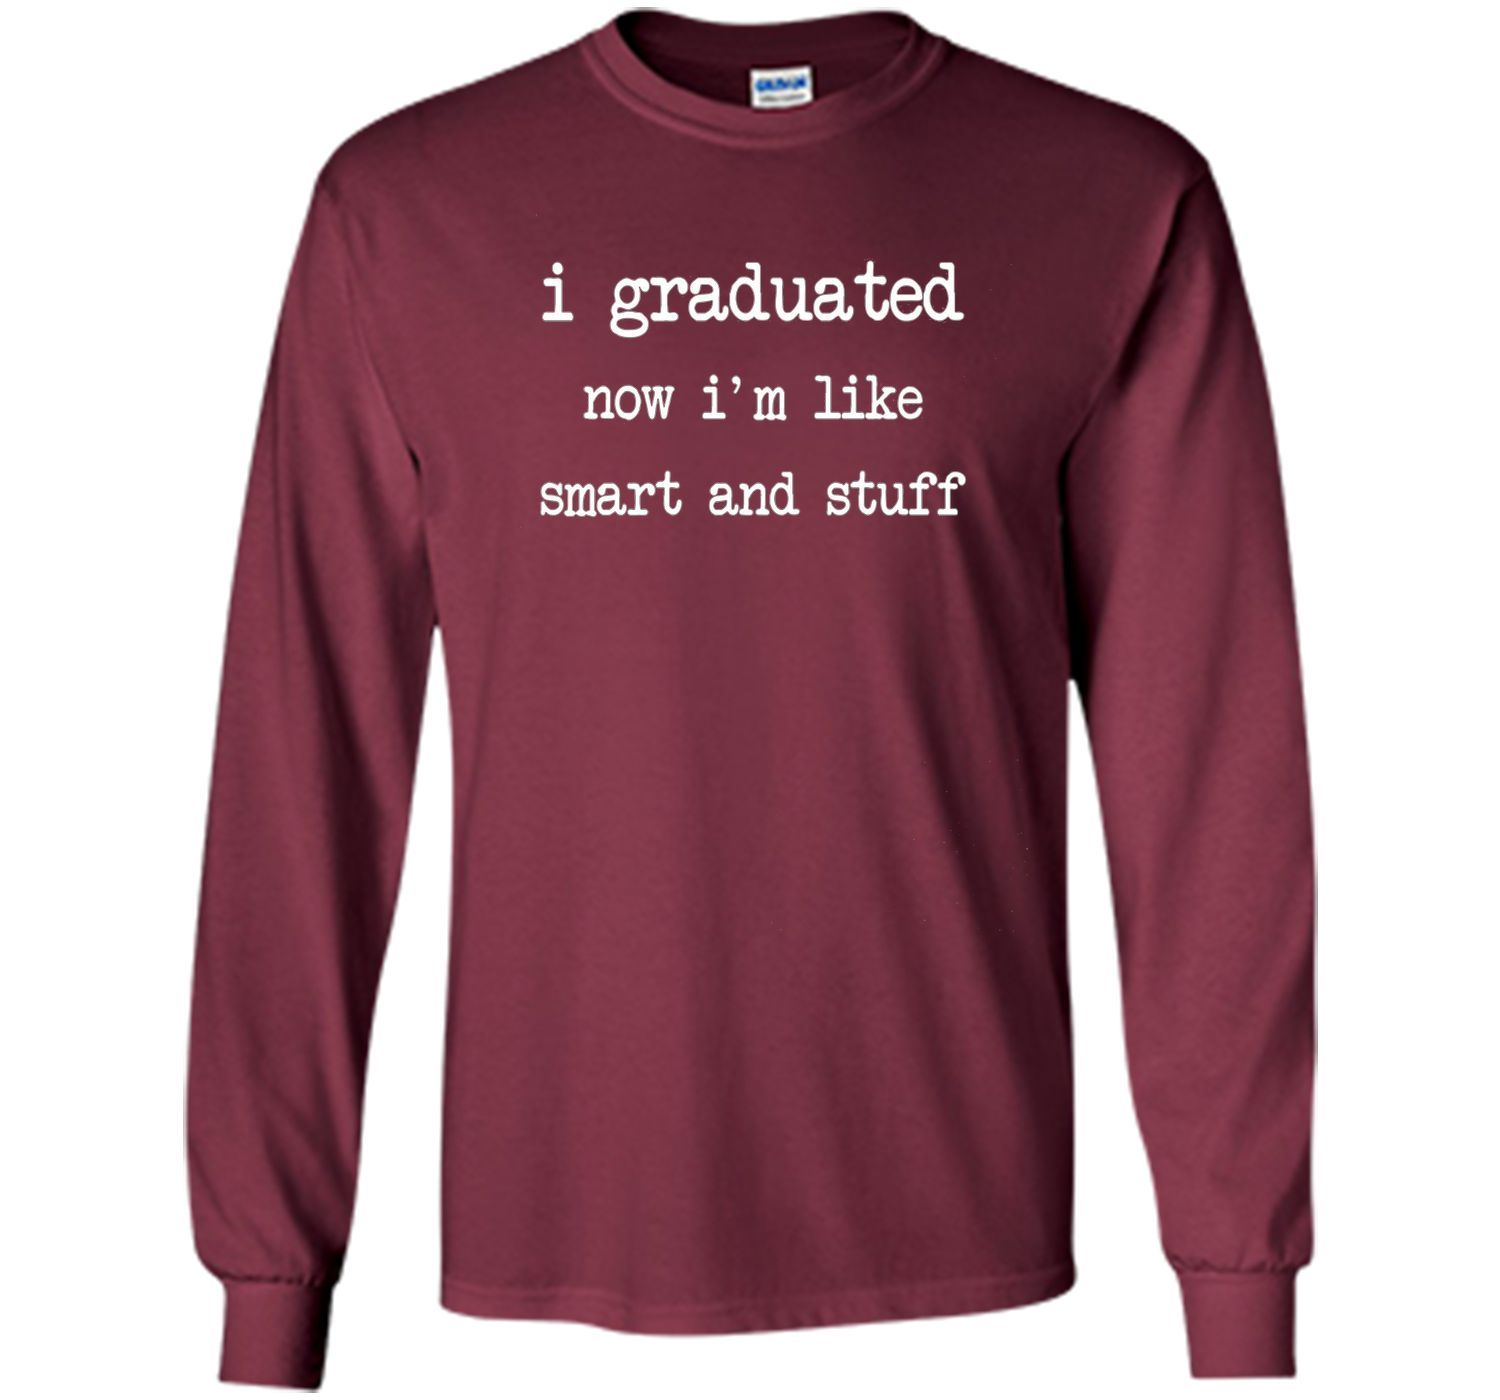 be3db179 Funny College High School Graduation Gift Senior 2017 Shirt   Products